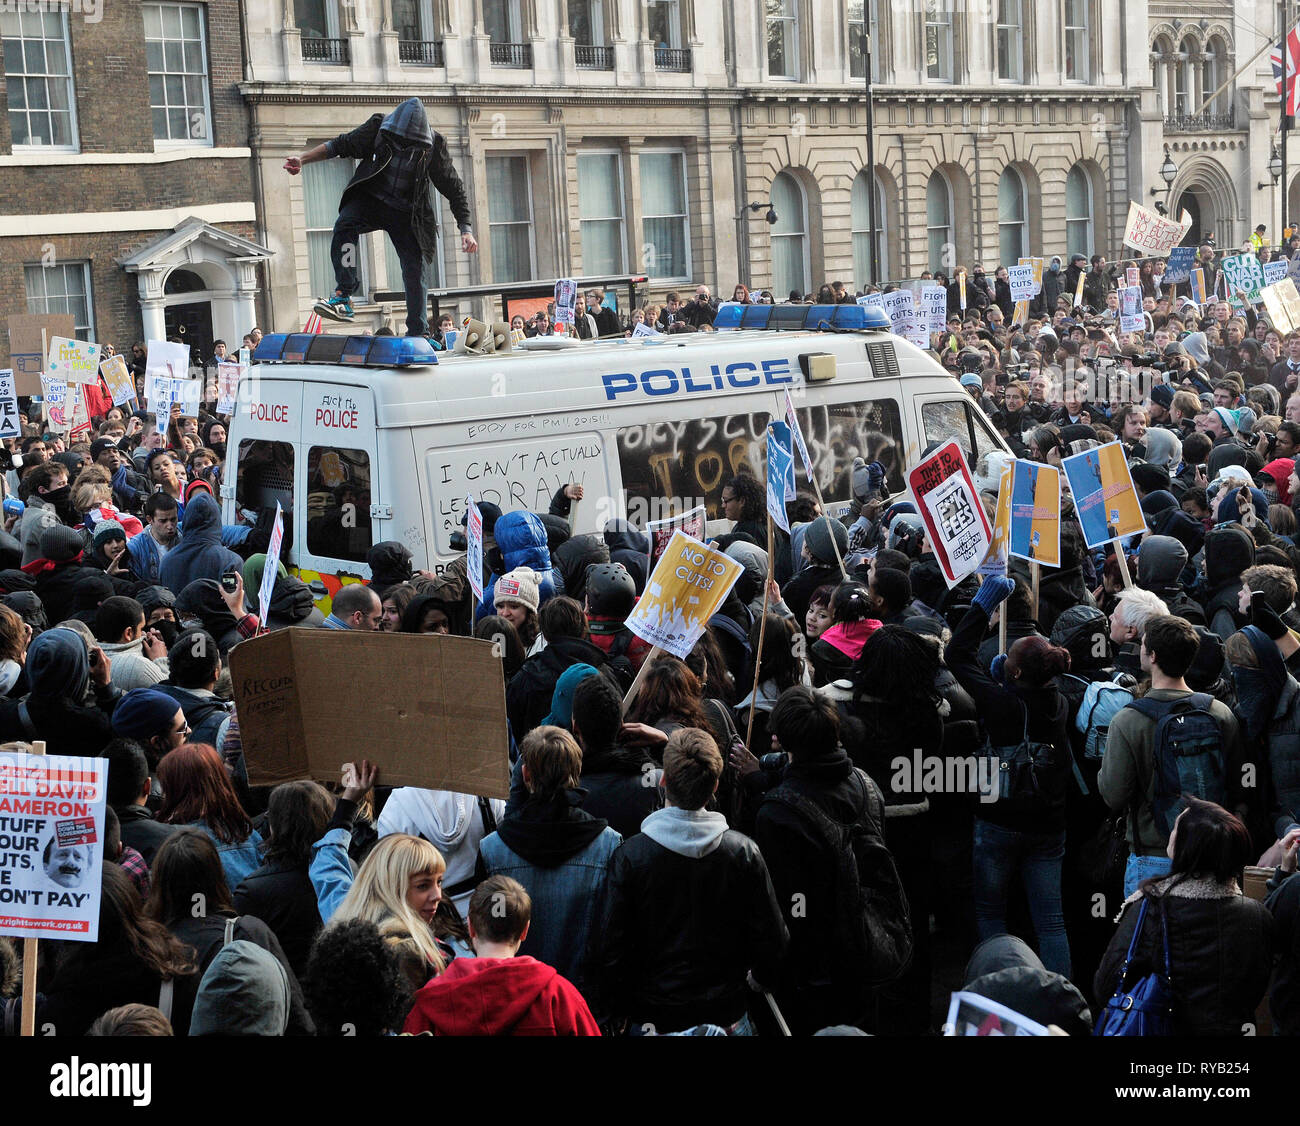 Student demos against govt cuts and top up fees . Trafalgar Square and Whitehall. A parked empty police van became the focus of many of the protestors' frustrations with small groups of hooded youths vandalising the vehicle: clambering onto the roof, writing  graffiti on the body work and smashing its windows and sirens . The presence of the van however alerted suspicions with many demonstrators alleging that the vehicle had been placed deliberately as a target which could then be retrospectively cited as  justification for heavier handed police intervention or to simply further isolate the st - Stock Image